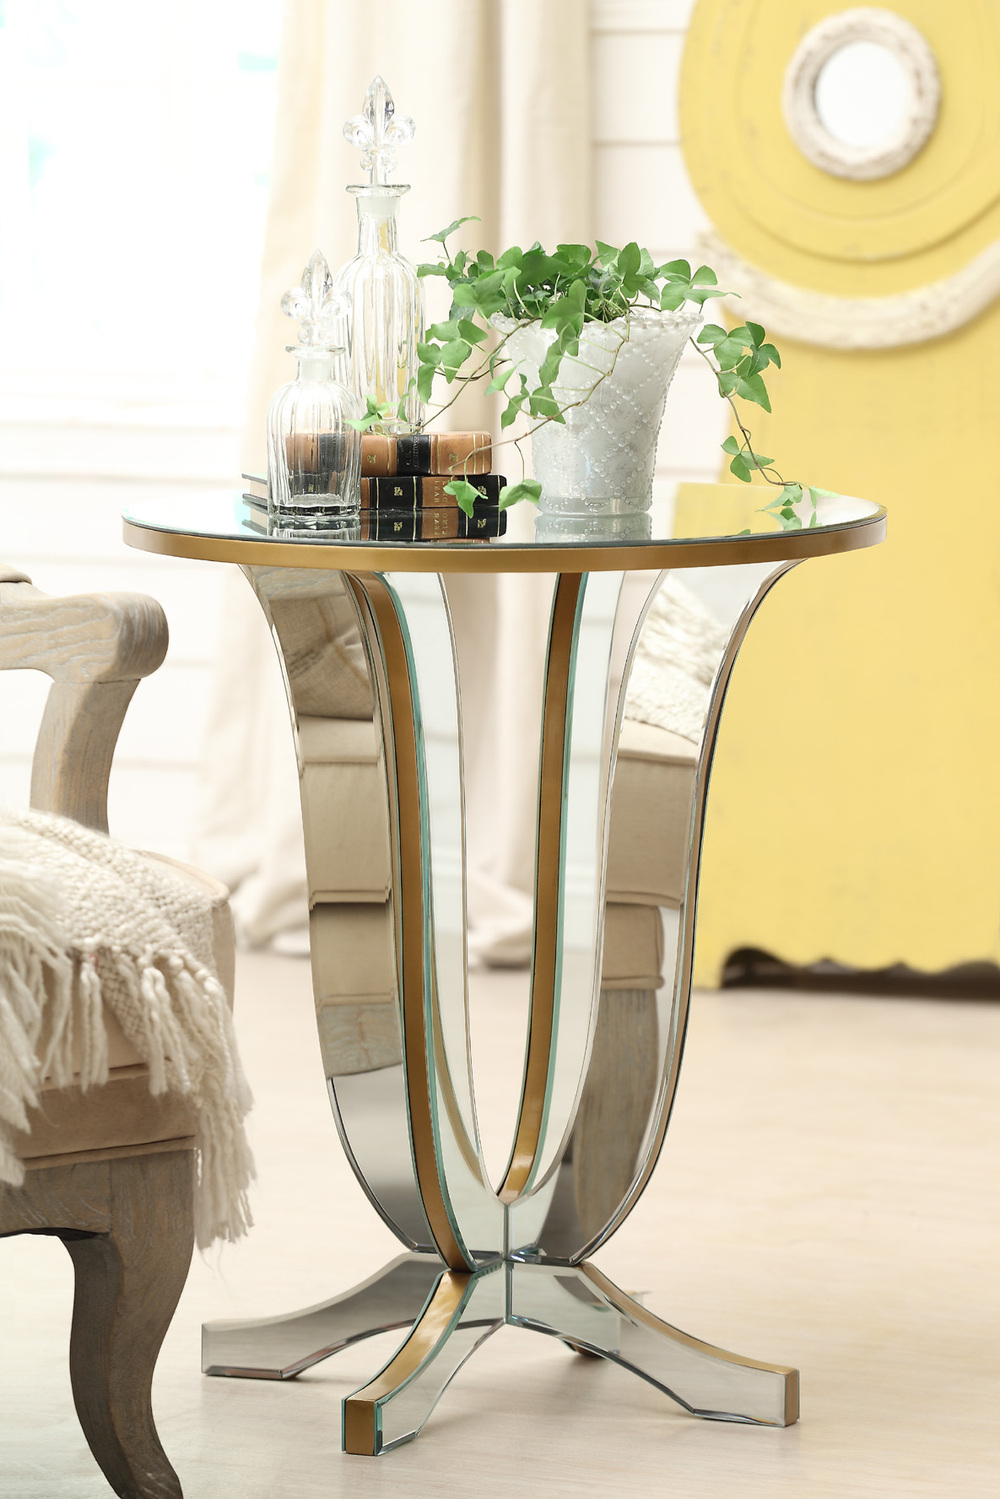 astonishing small accent tables for living room table gold furniture modern kijiji white glass antique decorative target round outdoor full size knotty pine dining grey neutral